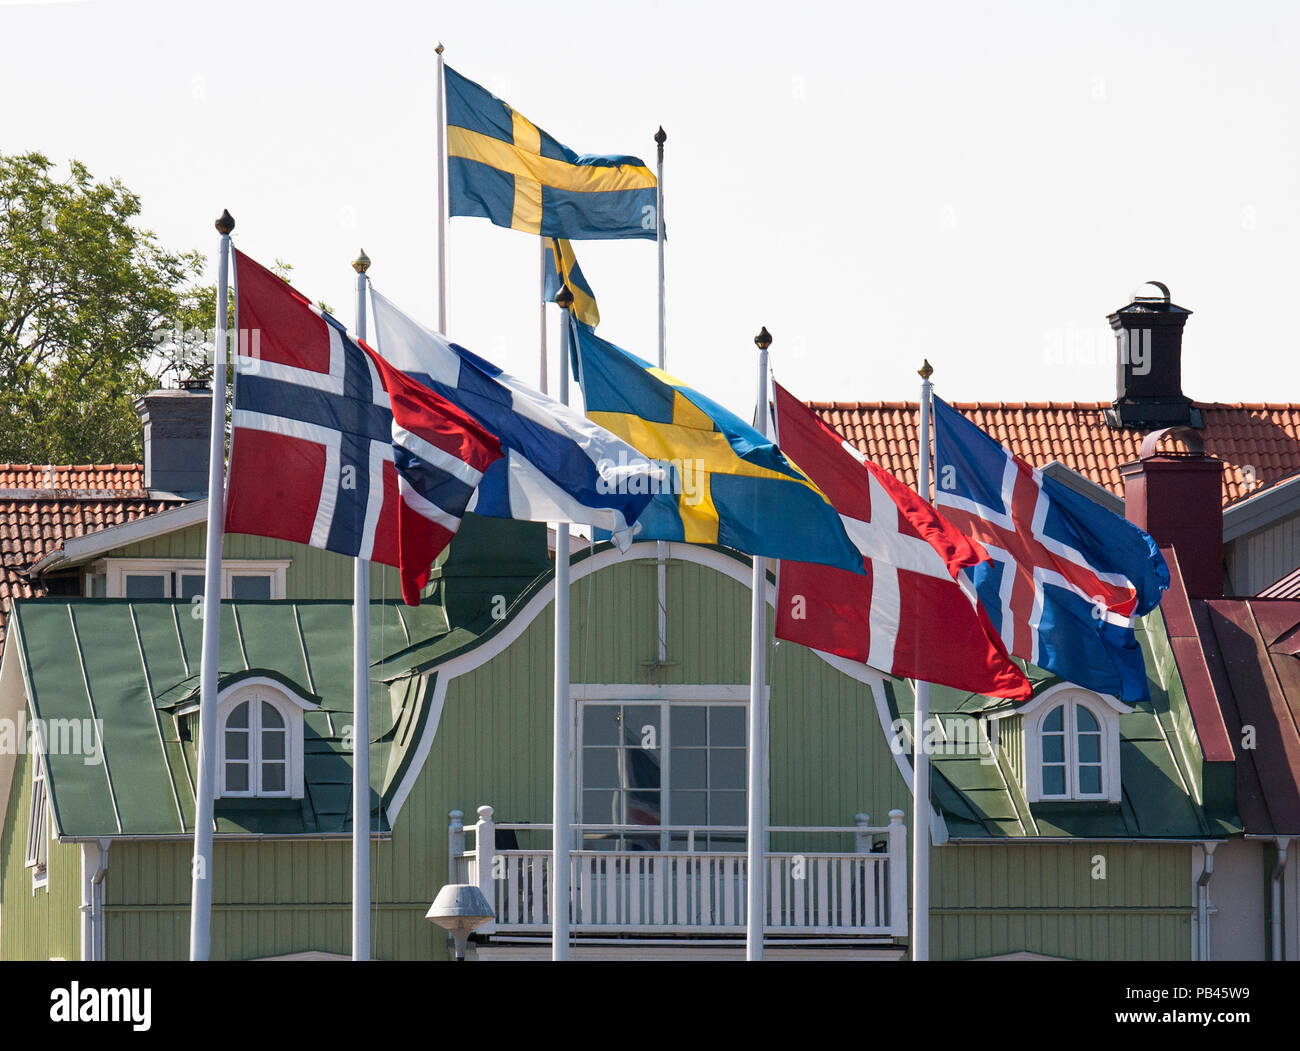 NORDIC FLAG on pole,Norway,Finland,Sweden,Denmark and Iceland 2018 - Stock Image